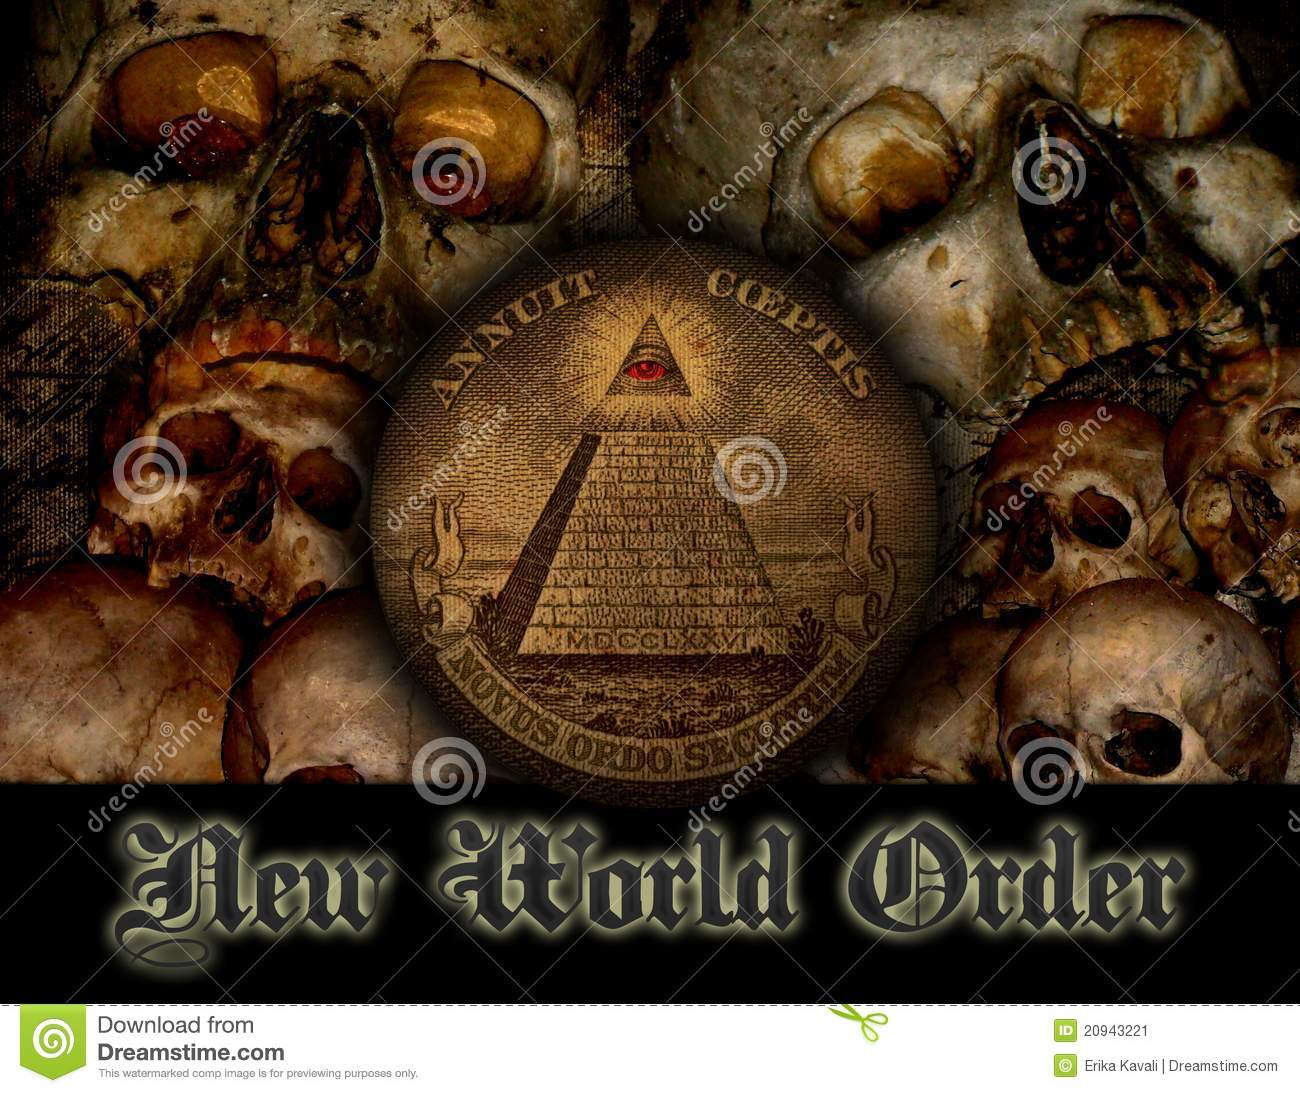 Photos Extra NWO1 ( httpswww.dreamstime.comstock-image-new-world-order-image20943221 ) new-world-order-20943221